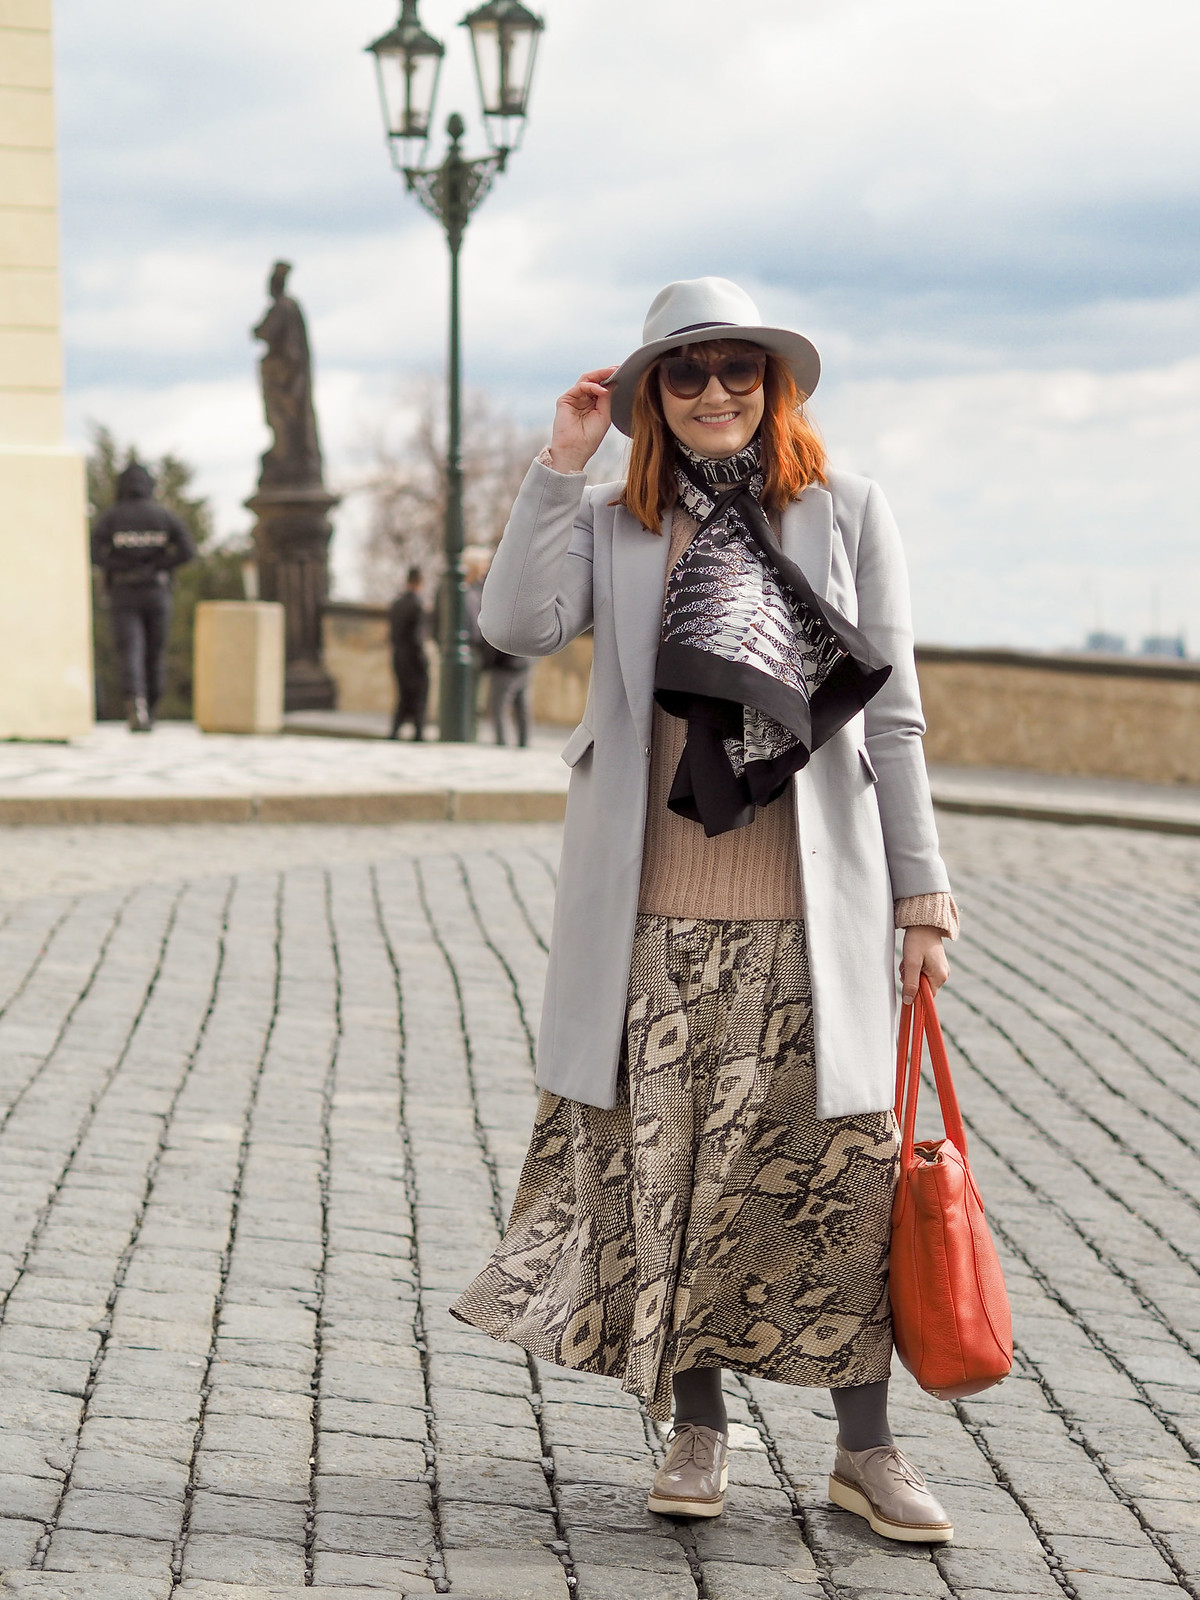 Over 40 Style: What to Wear for a European Sightseeing Break (in Prague) | Not Dressed As Lamb